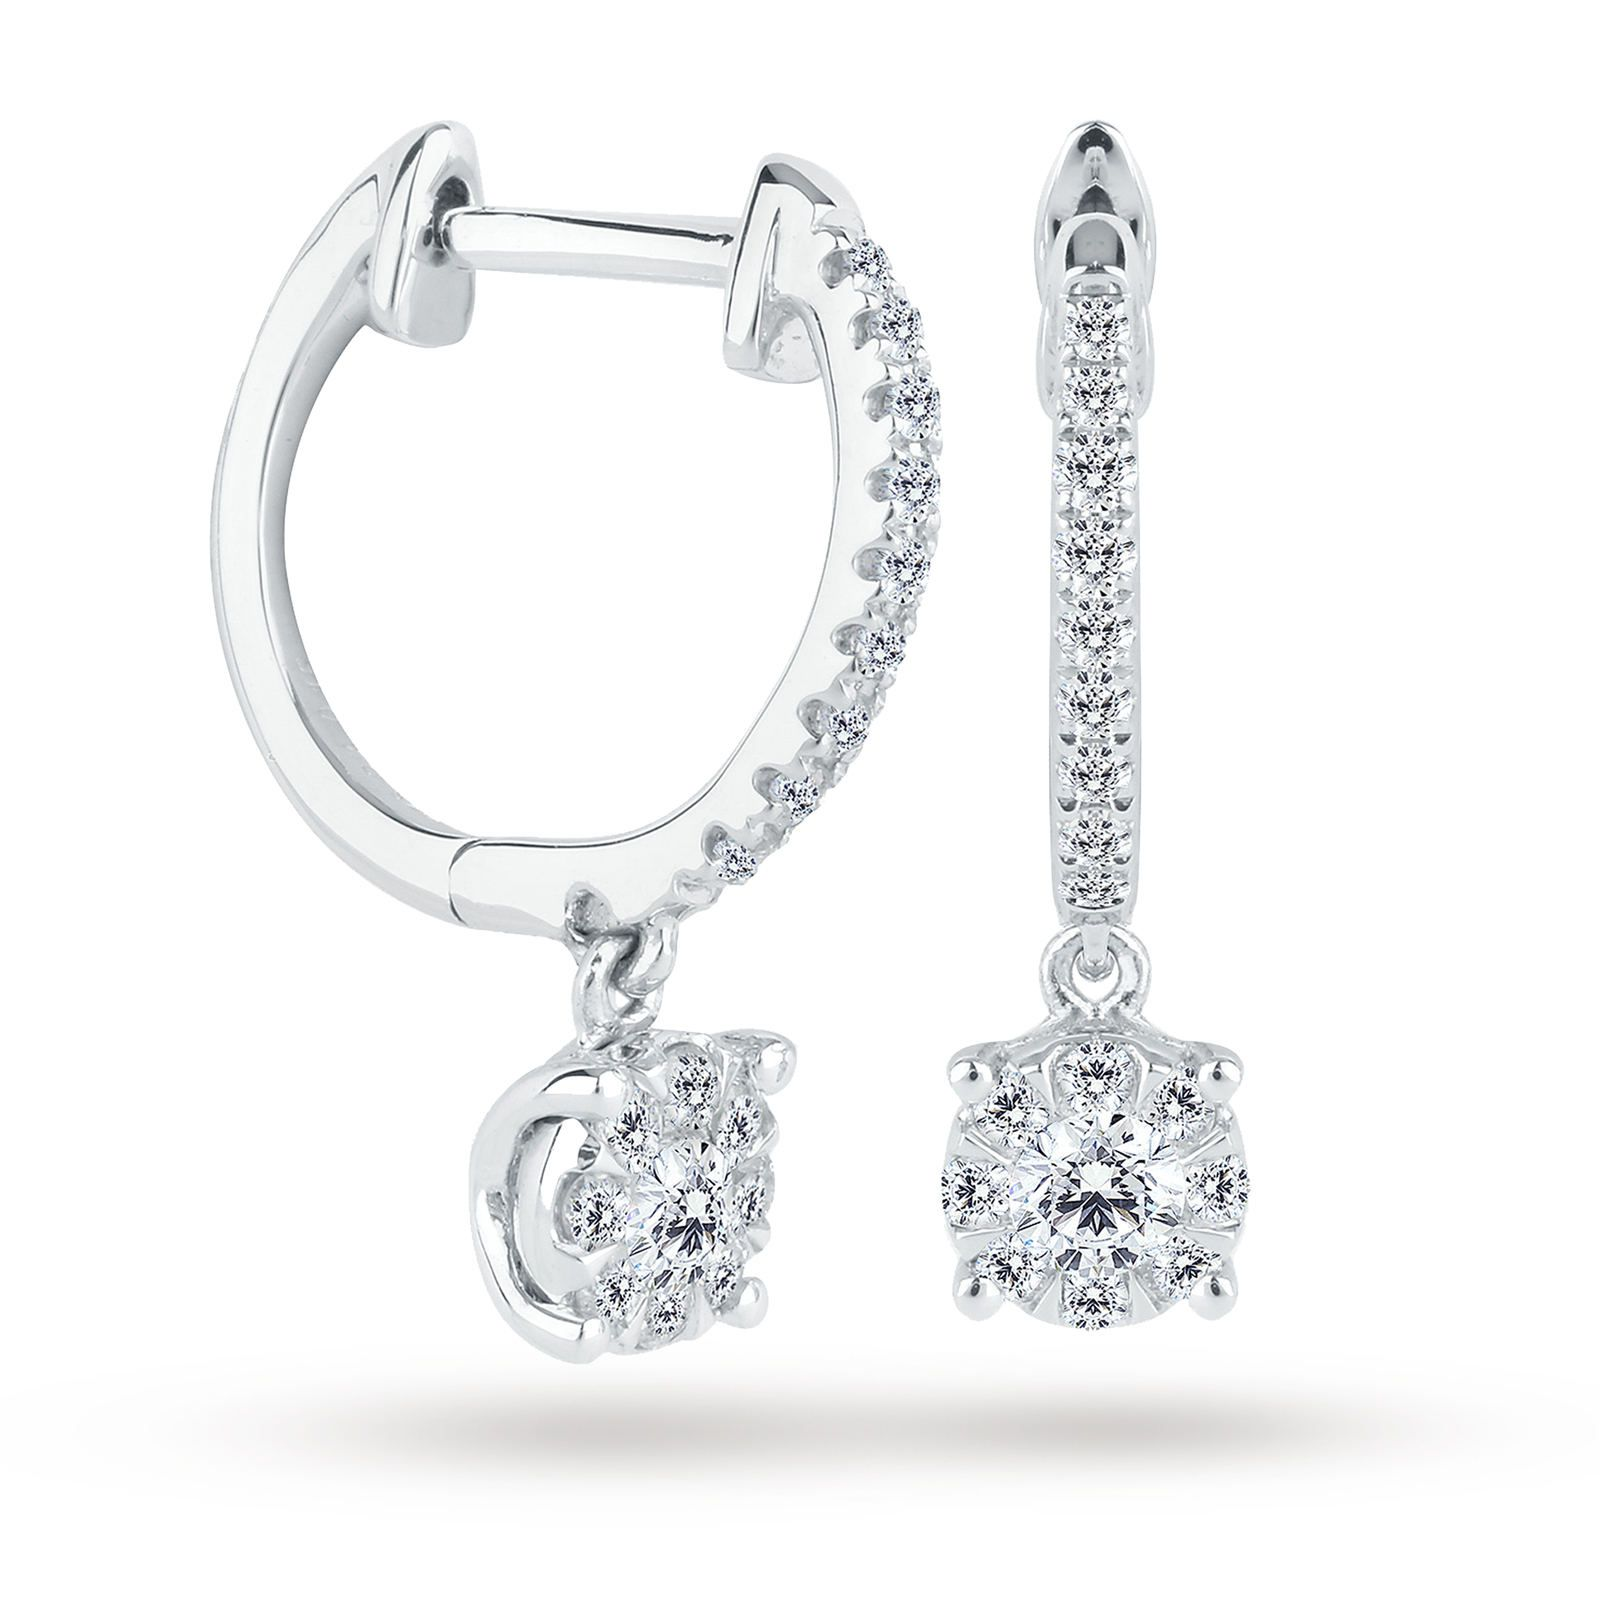 cd71bf19e 9ct White Gold 0.30 Carat Total Weight Diamond Multi Stone Drop Earrings |  Earrings | Jewellery | Goldsmiths